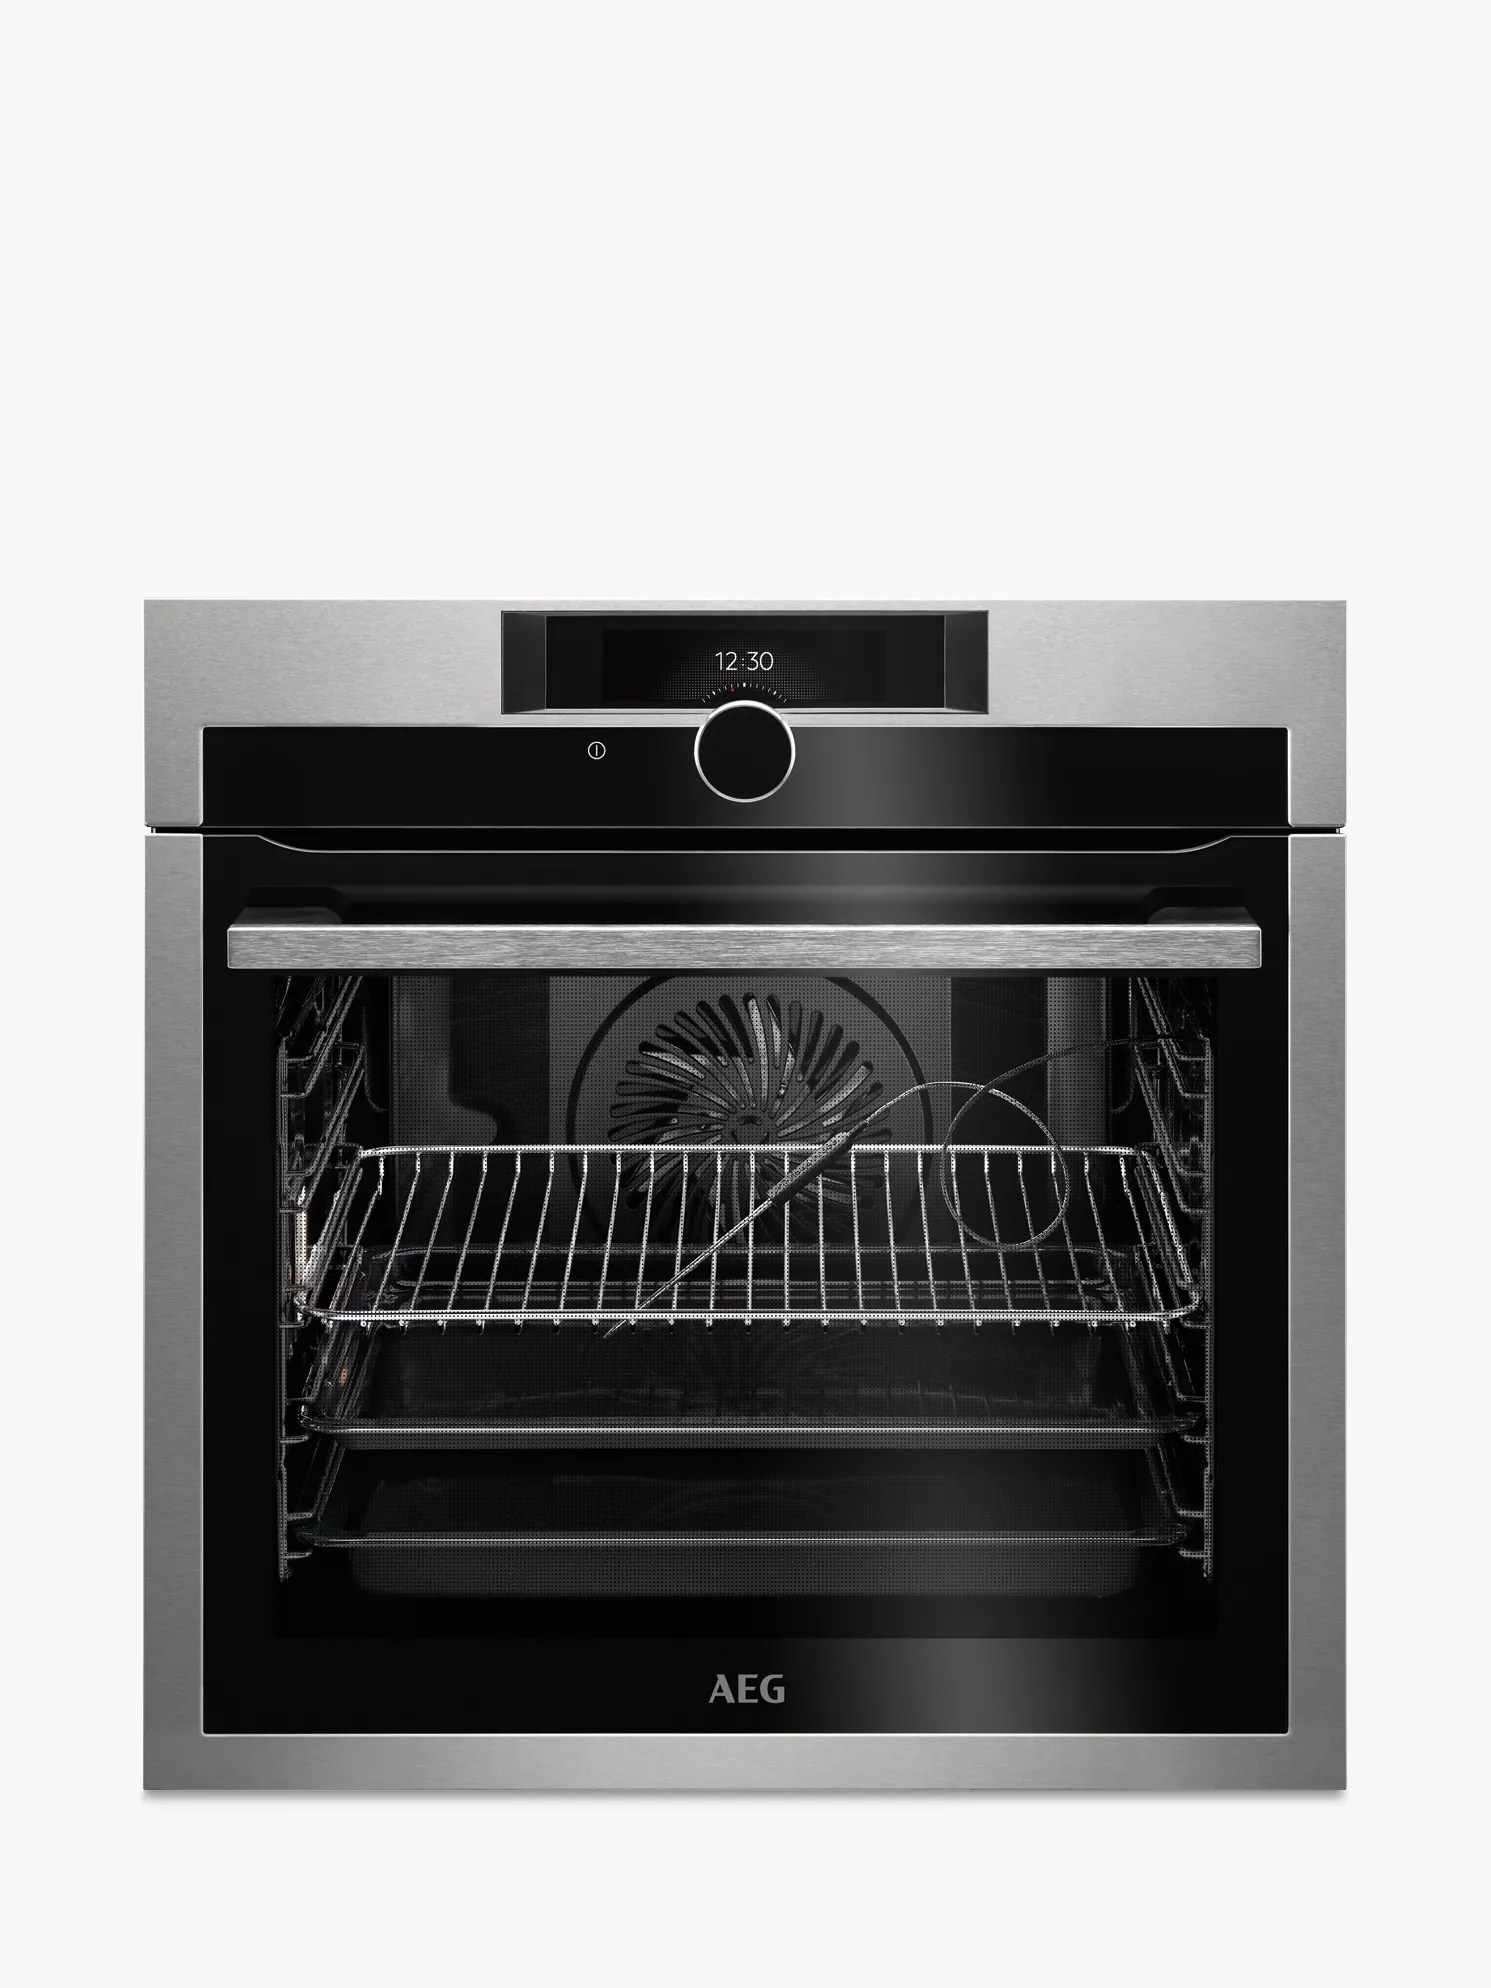 Aeg Online Shop Aeg Bpe842720m Built In Single Oven Stainless Steel At John Lewis